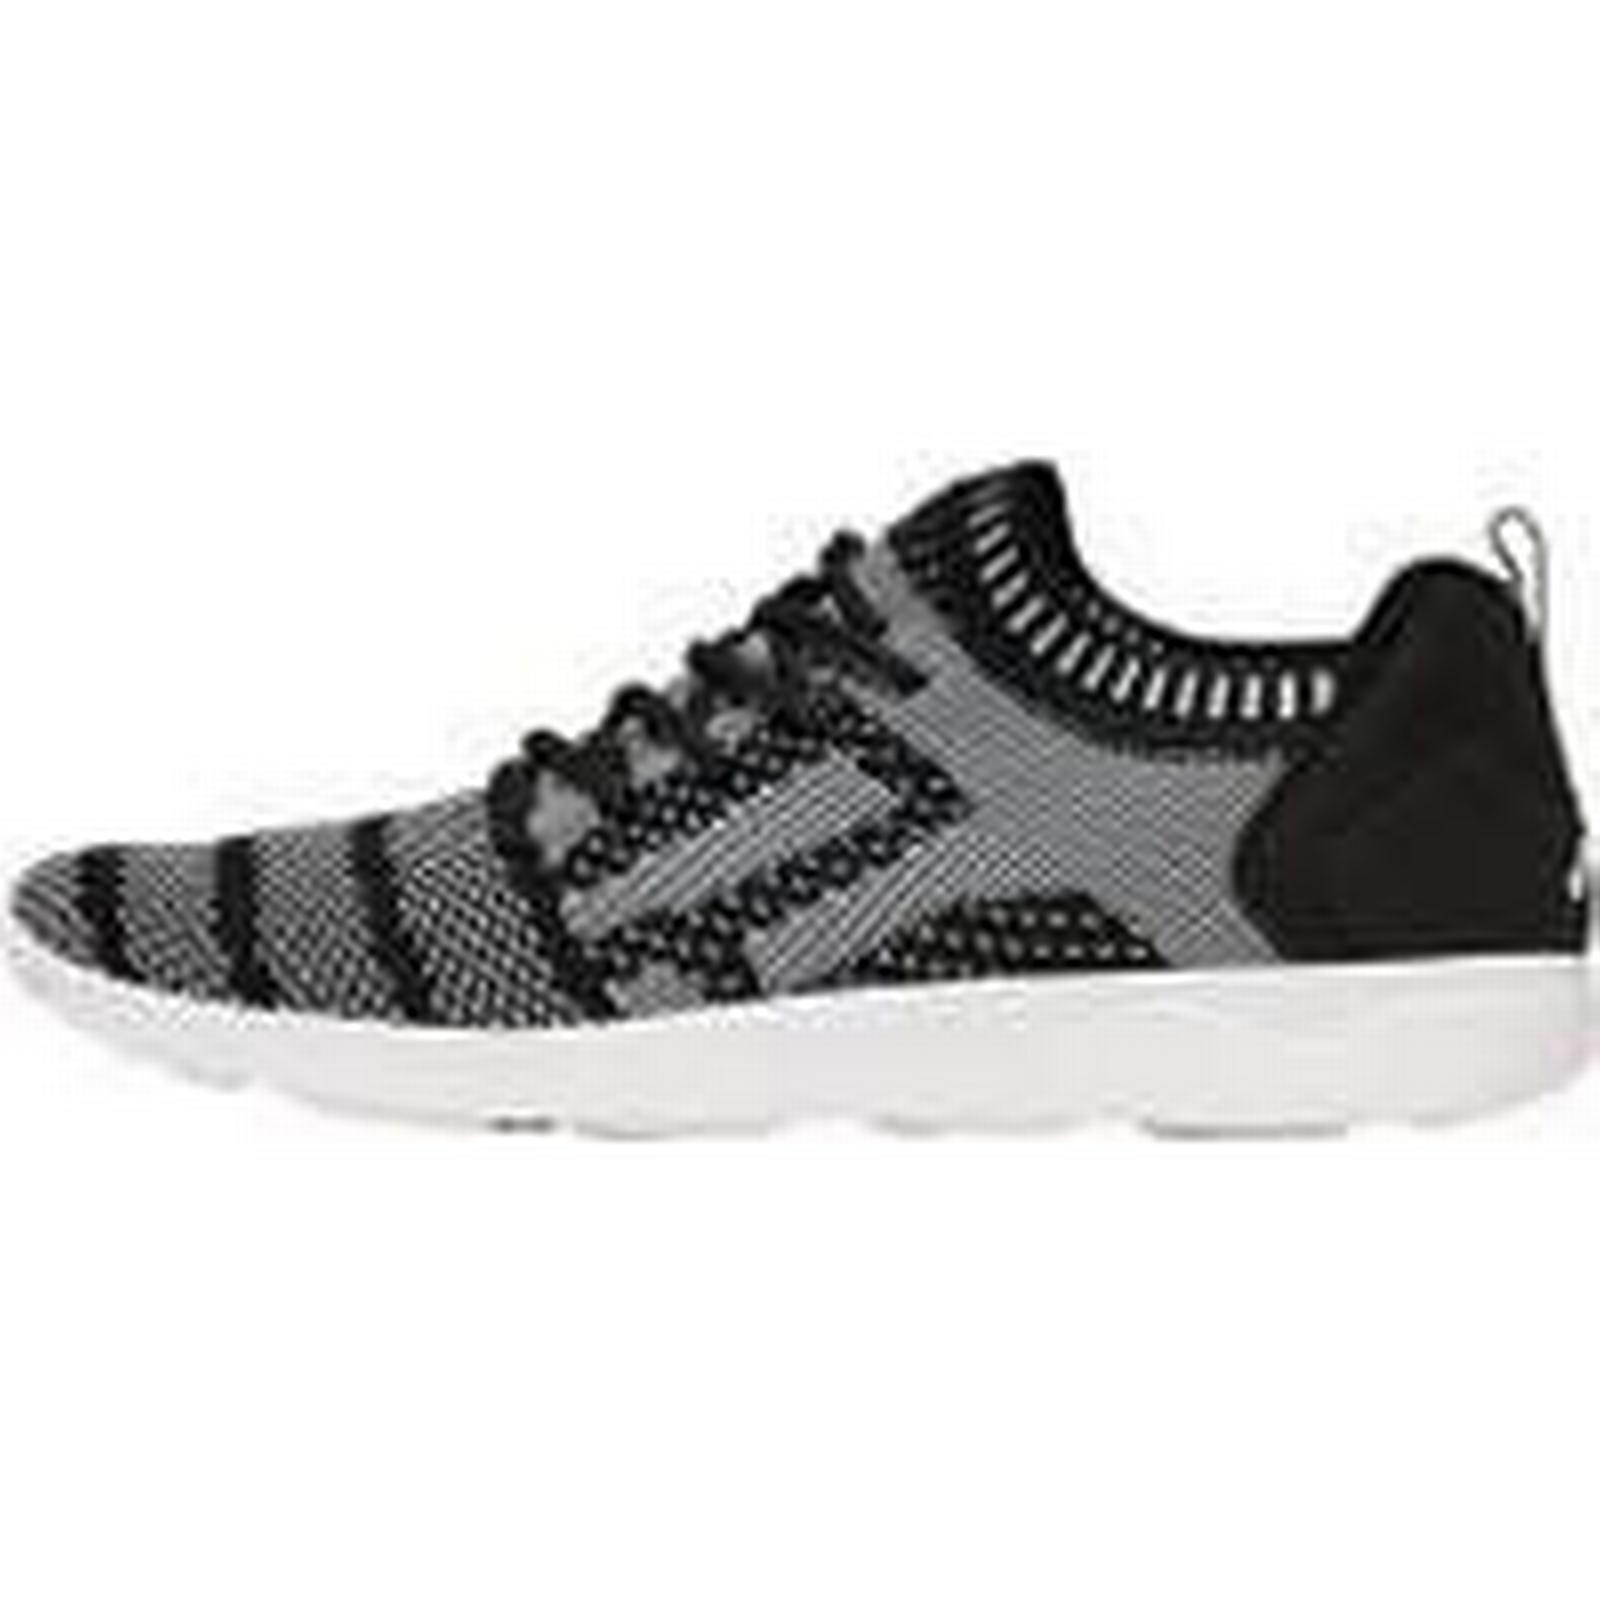 ONLY Contrast Trainers Online Women Black (38)-Man/Woman- Selling Online Trainers Store 2b5dac